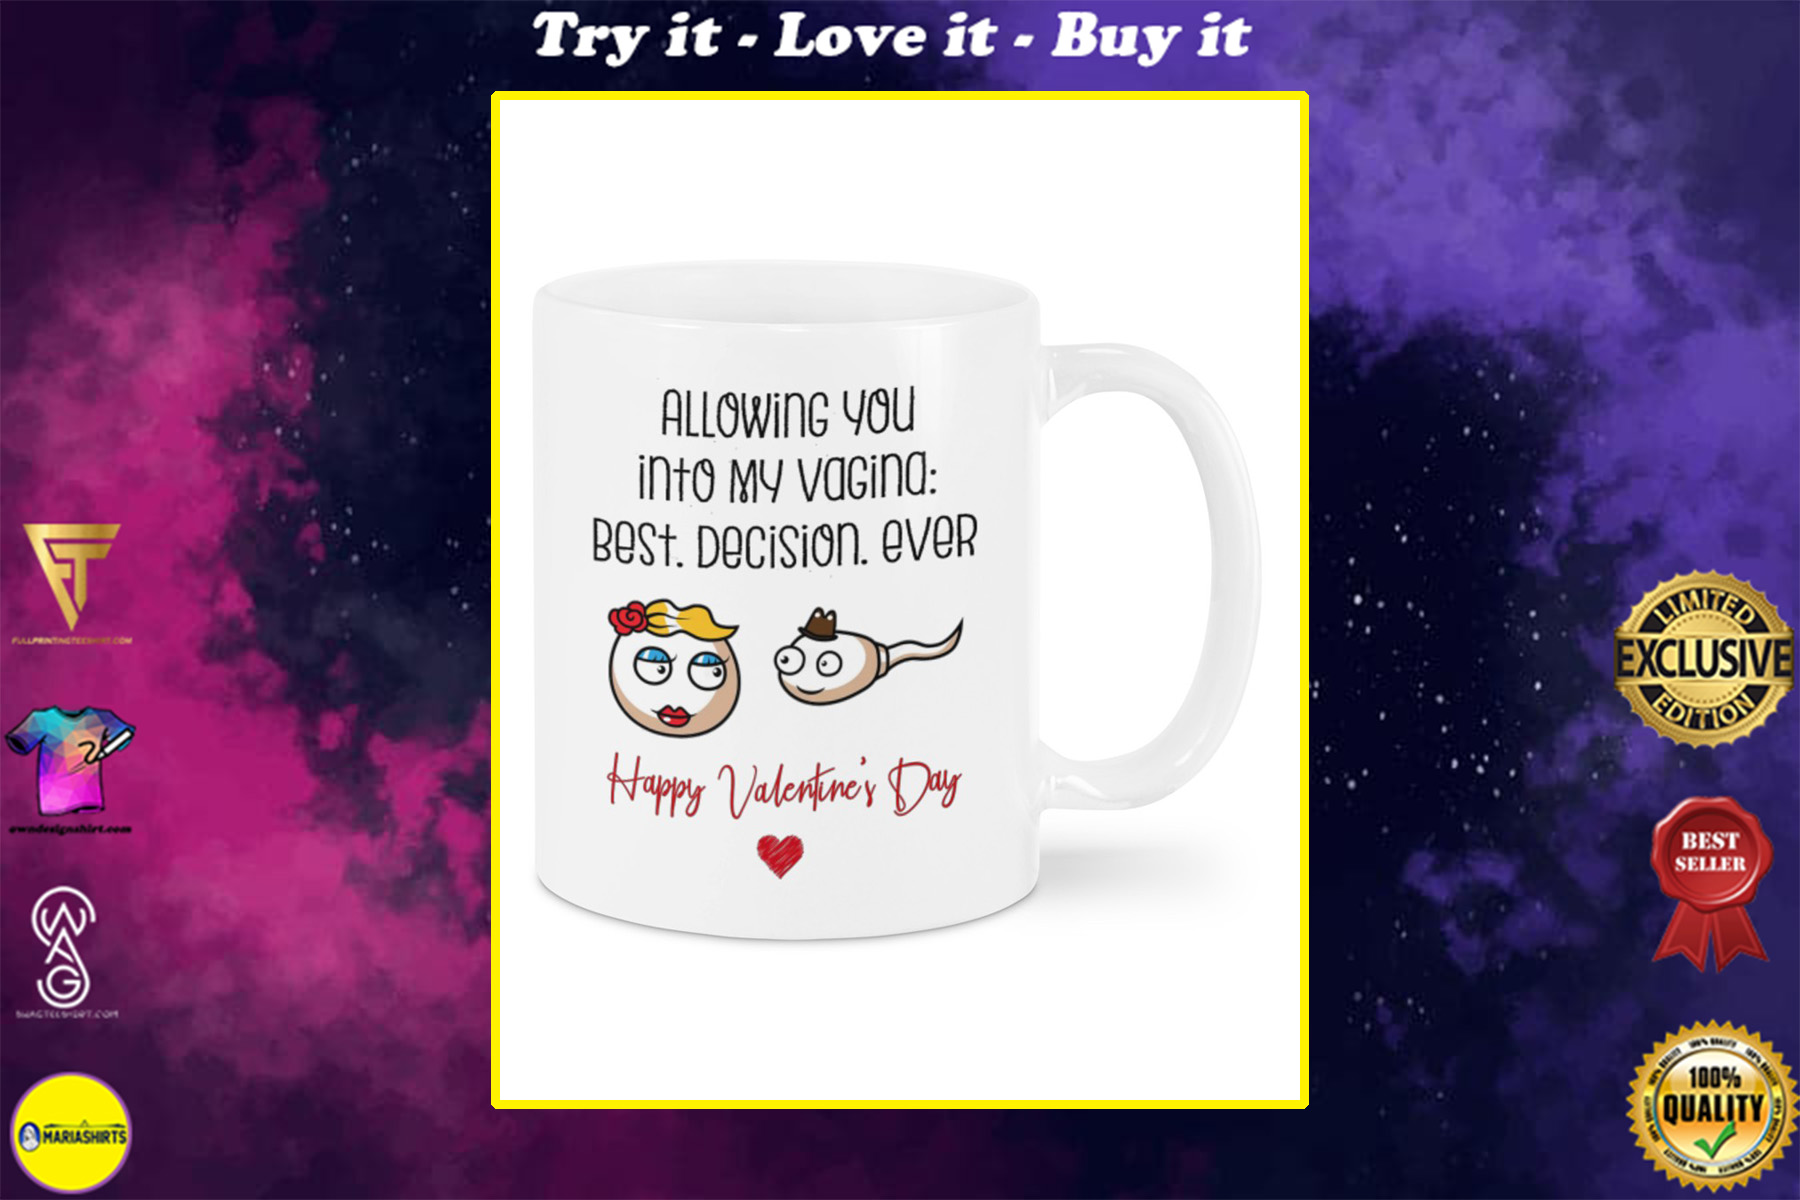 allowing you into my vagina best decision ever happy valentine's day mug